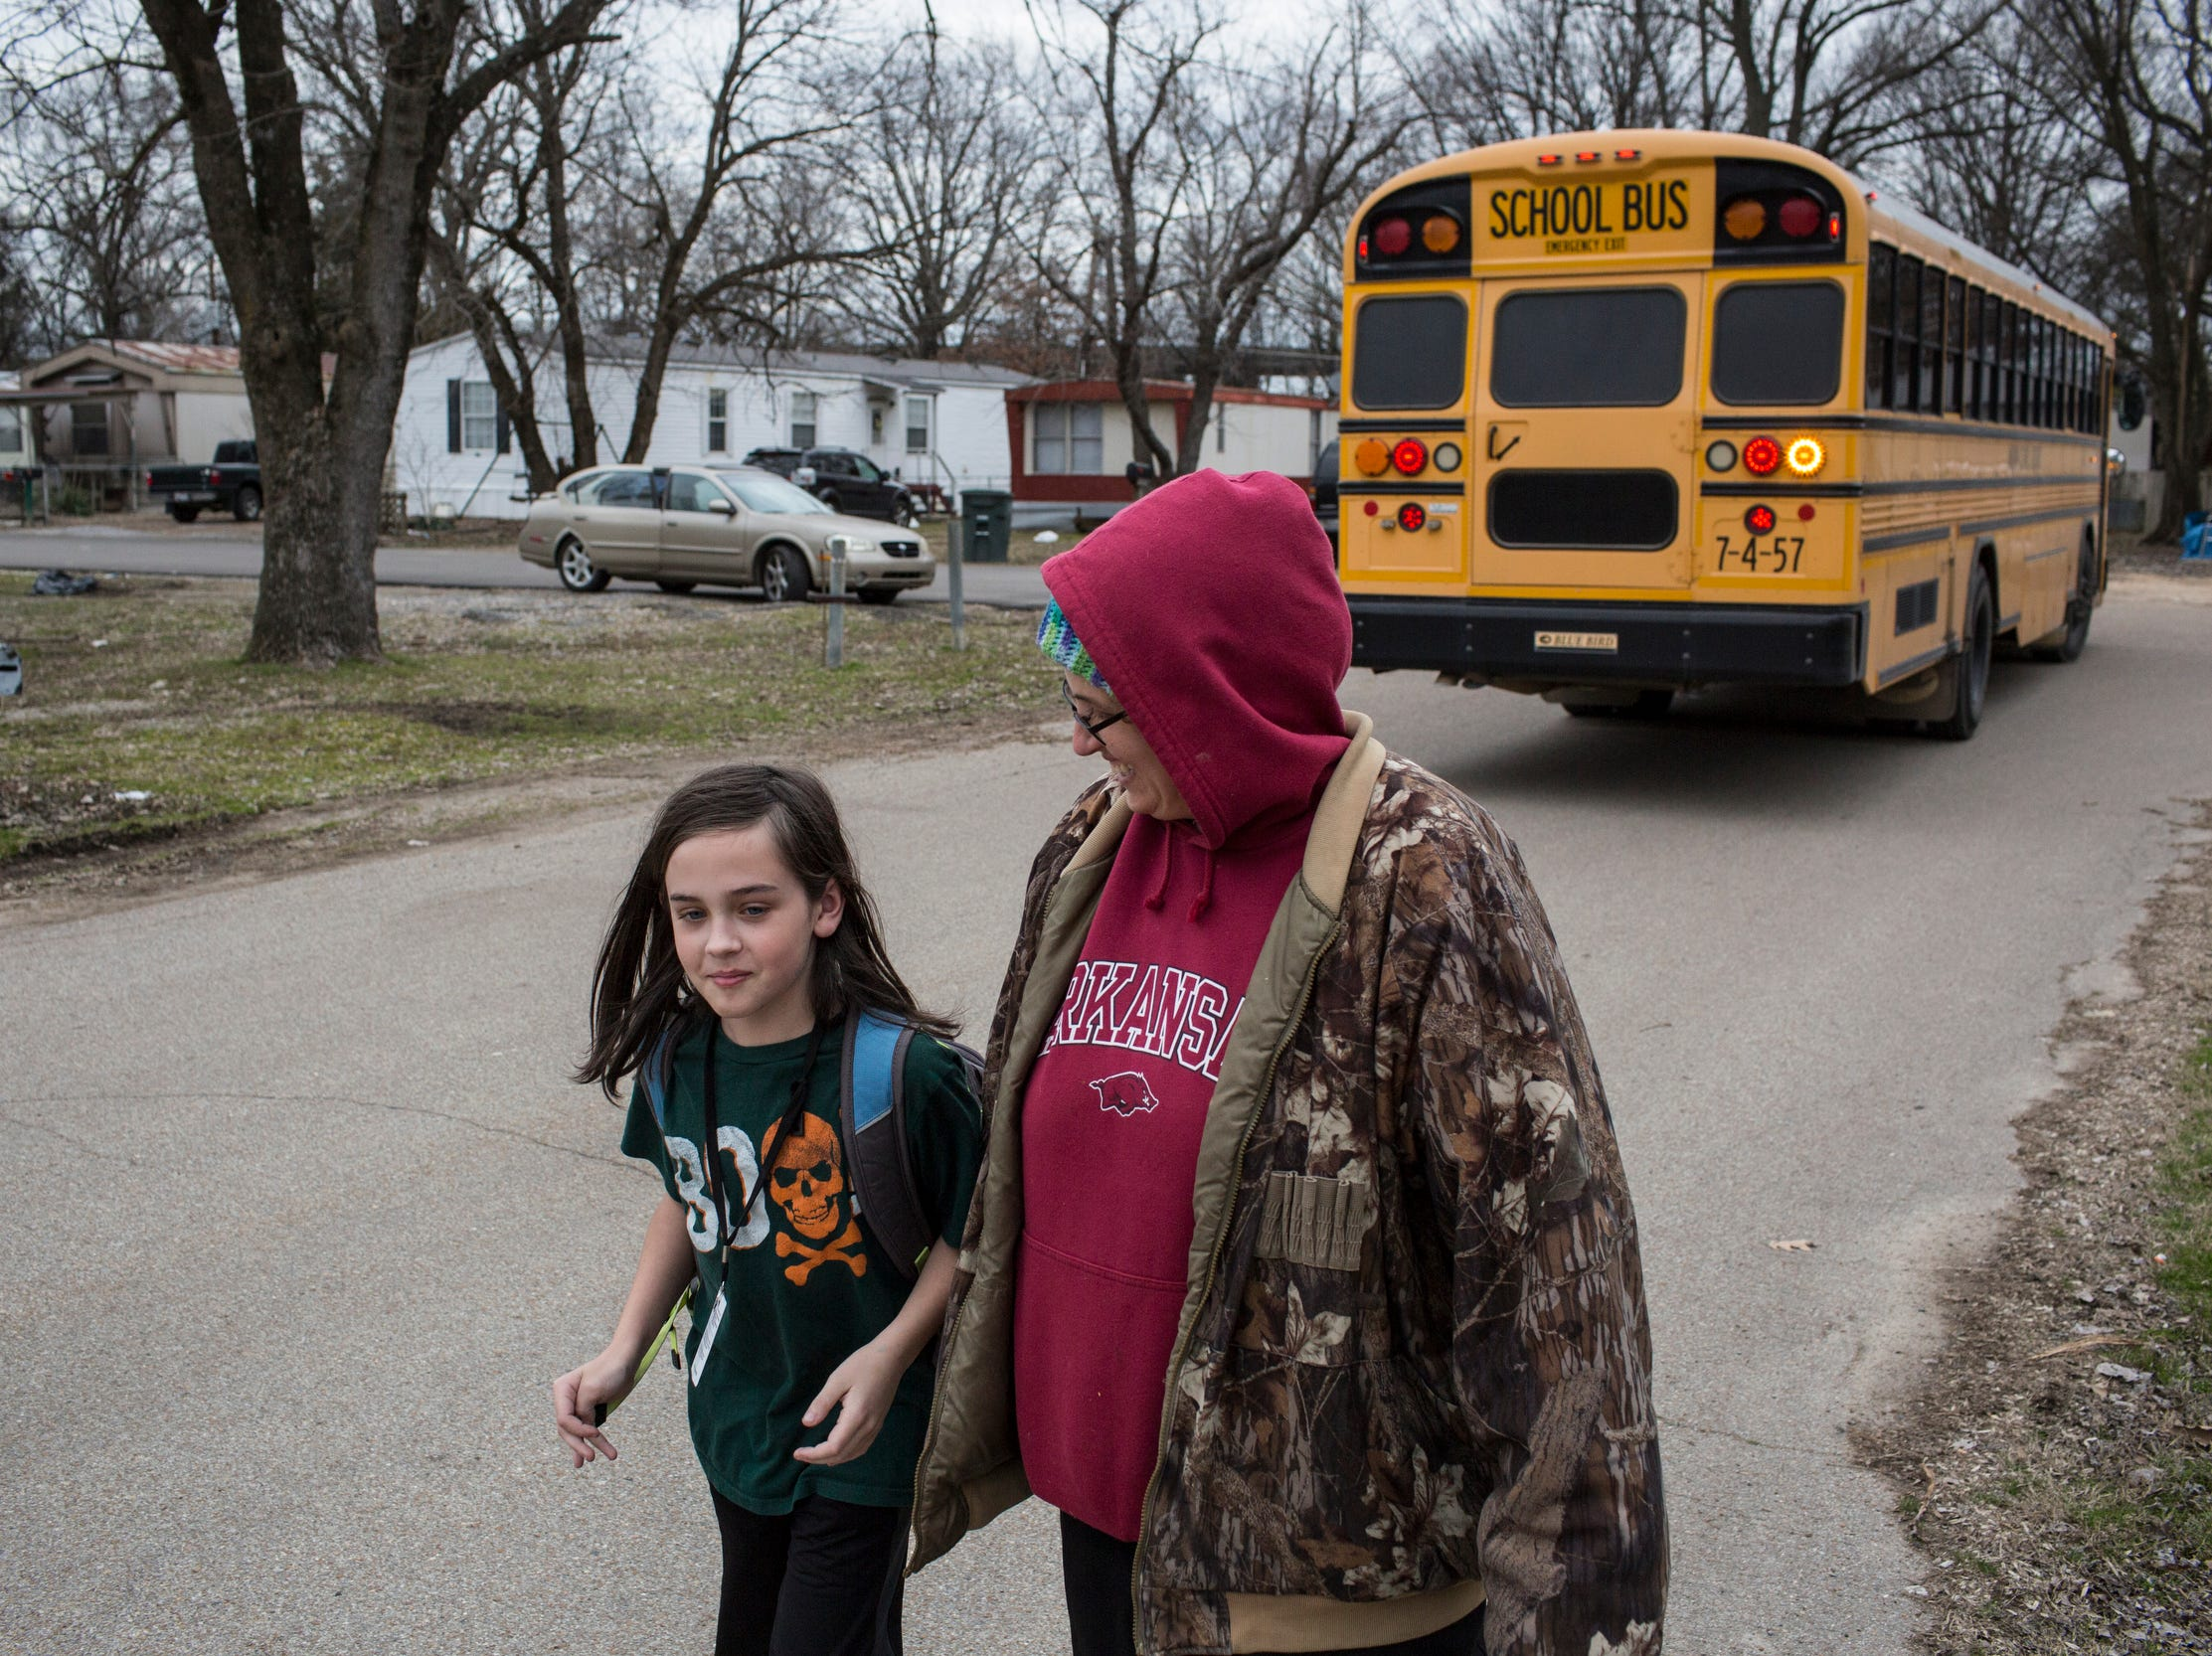 """January 31, 2019 - Debbie Camp walks her son, Logan Holt, 11, home from the bus stop in Lakeshore. In December of 2017, Debbie Camp, a mother of three who owns a trailer in Lakeshore, called the Arkansas Department of Environmental Quality to complain, """"Sewage is running everywhere.""""  She said she's frustrated that she hasn't seen any follow-up. """"Nobody cares, just cause we're a trailer park,"""" Camp said. Records obtained by The CA show that Camp's complaint was received. But, the Arkansas Department of Environmental Quality said they have no inspection report resulting from her complaint, though they believe the issue was related to a residential line as opposed to the main sewer."""